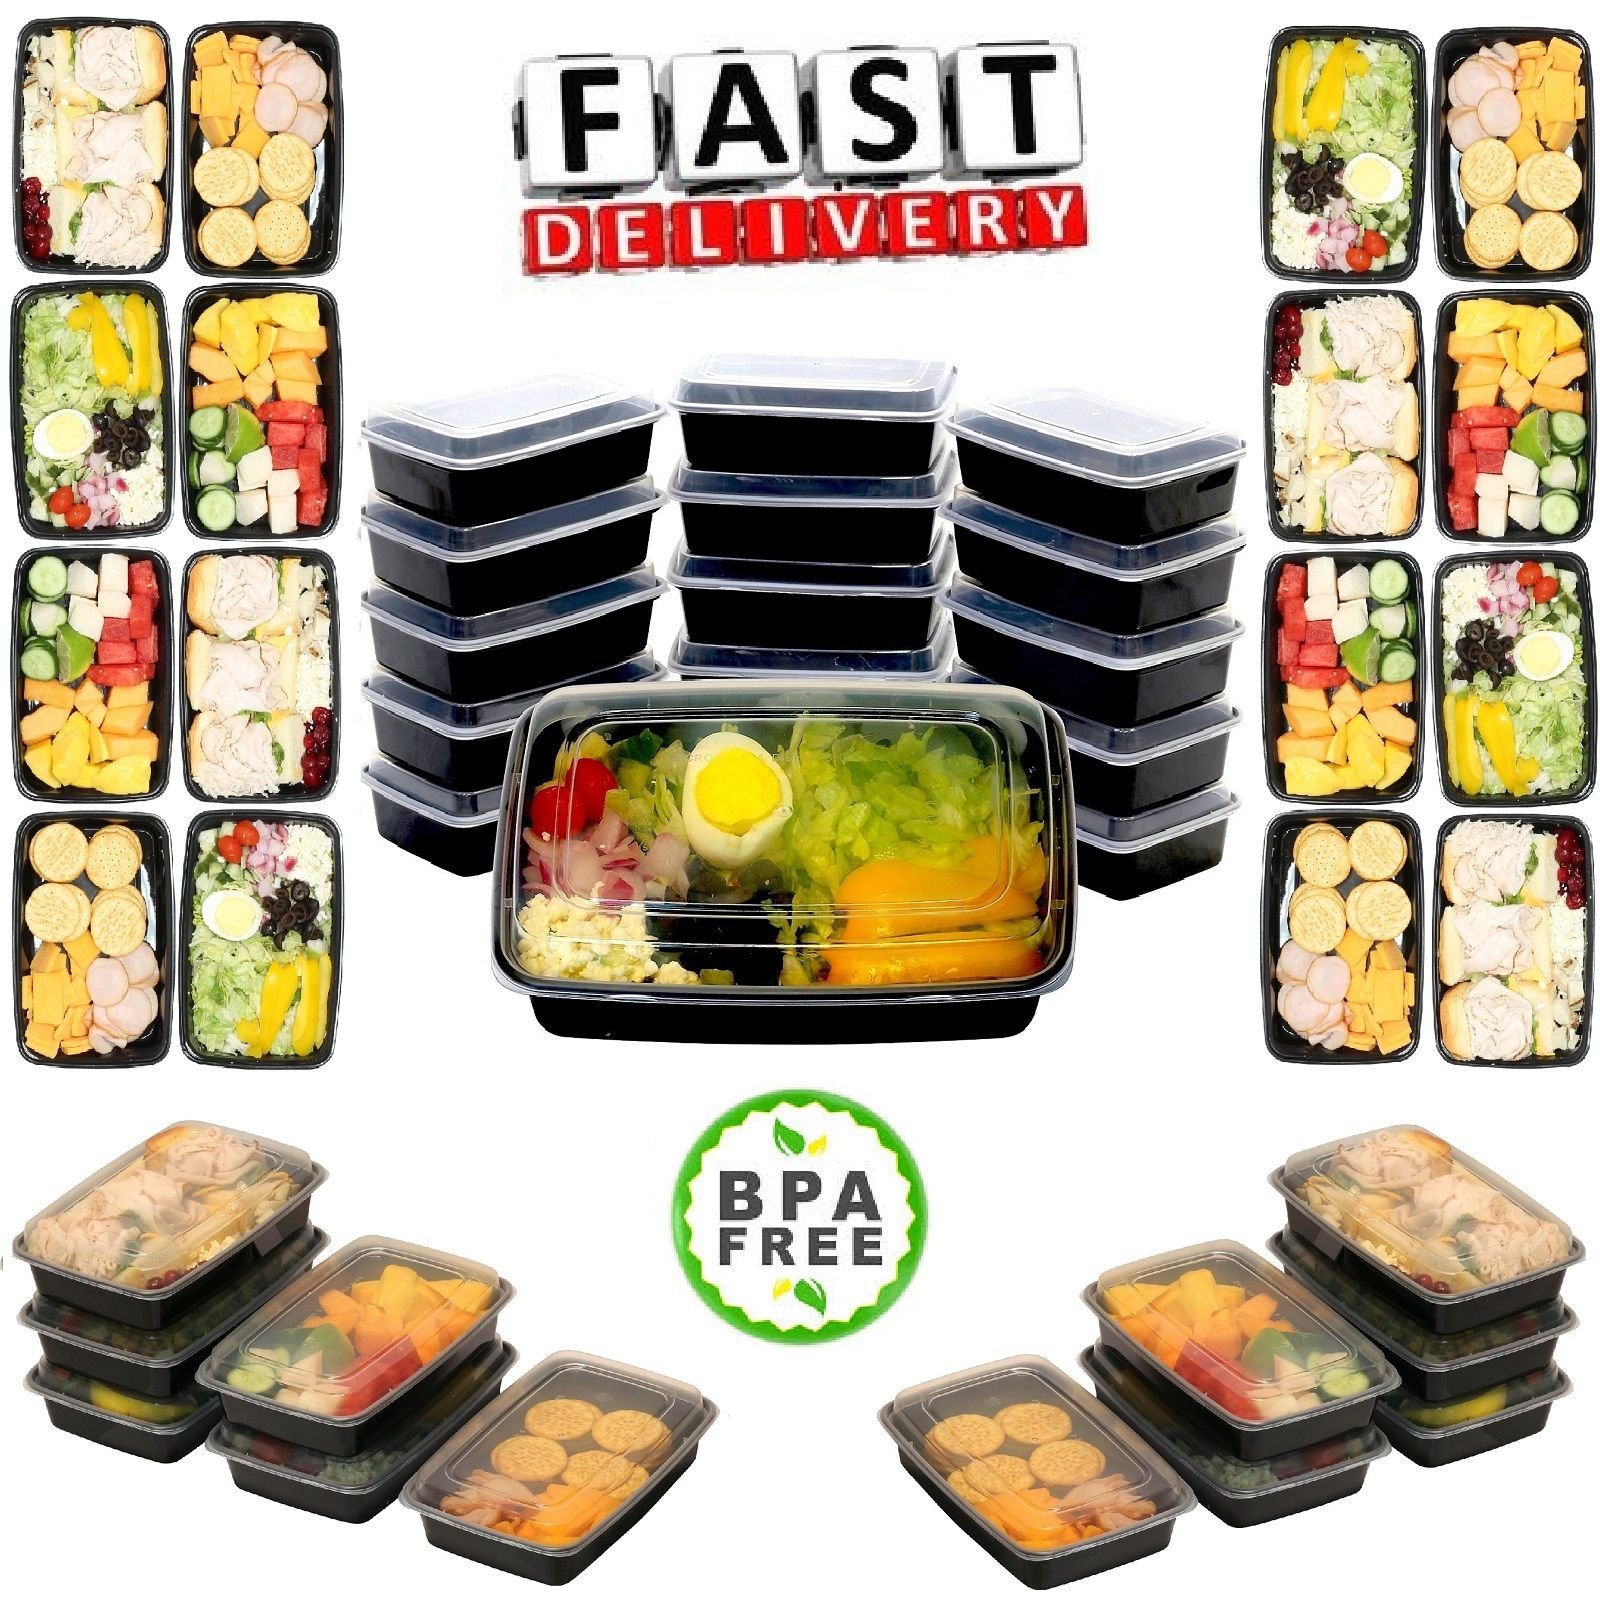 16 Meal Prep Containers Food Storage Reusable Microwave Freezer Dishwasher Safe 1